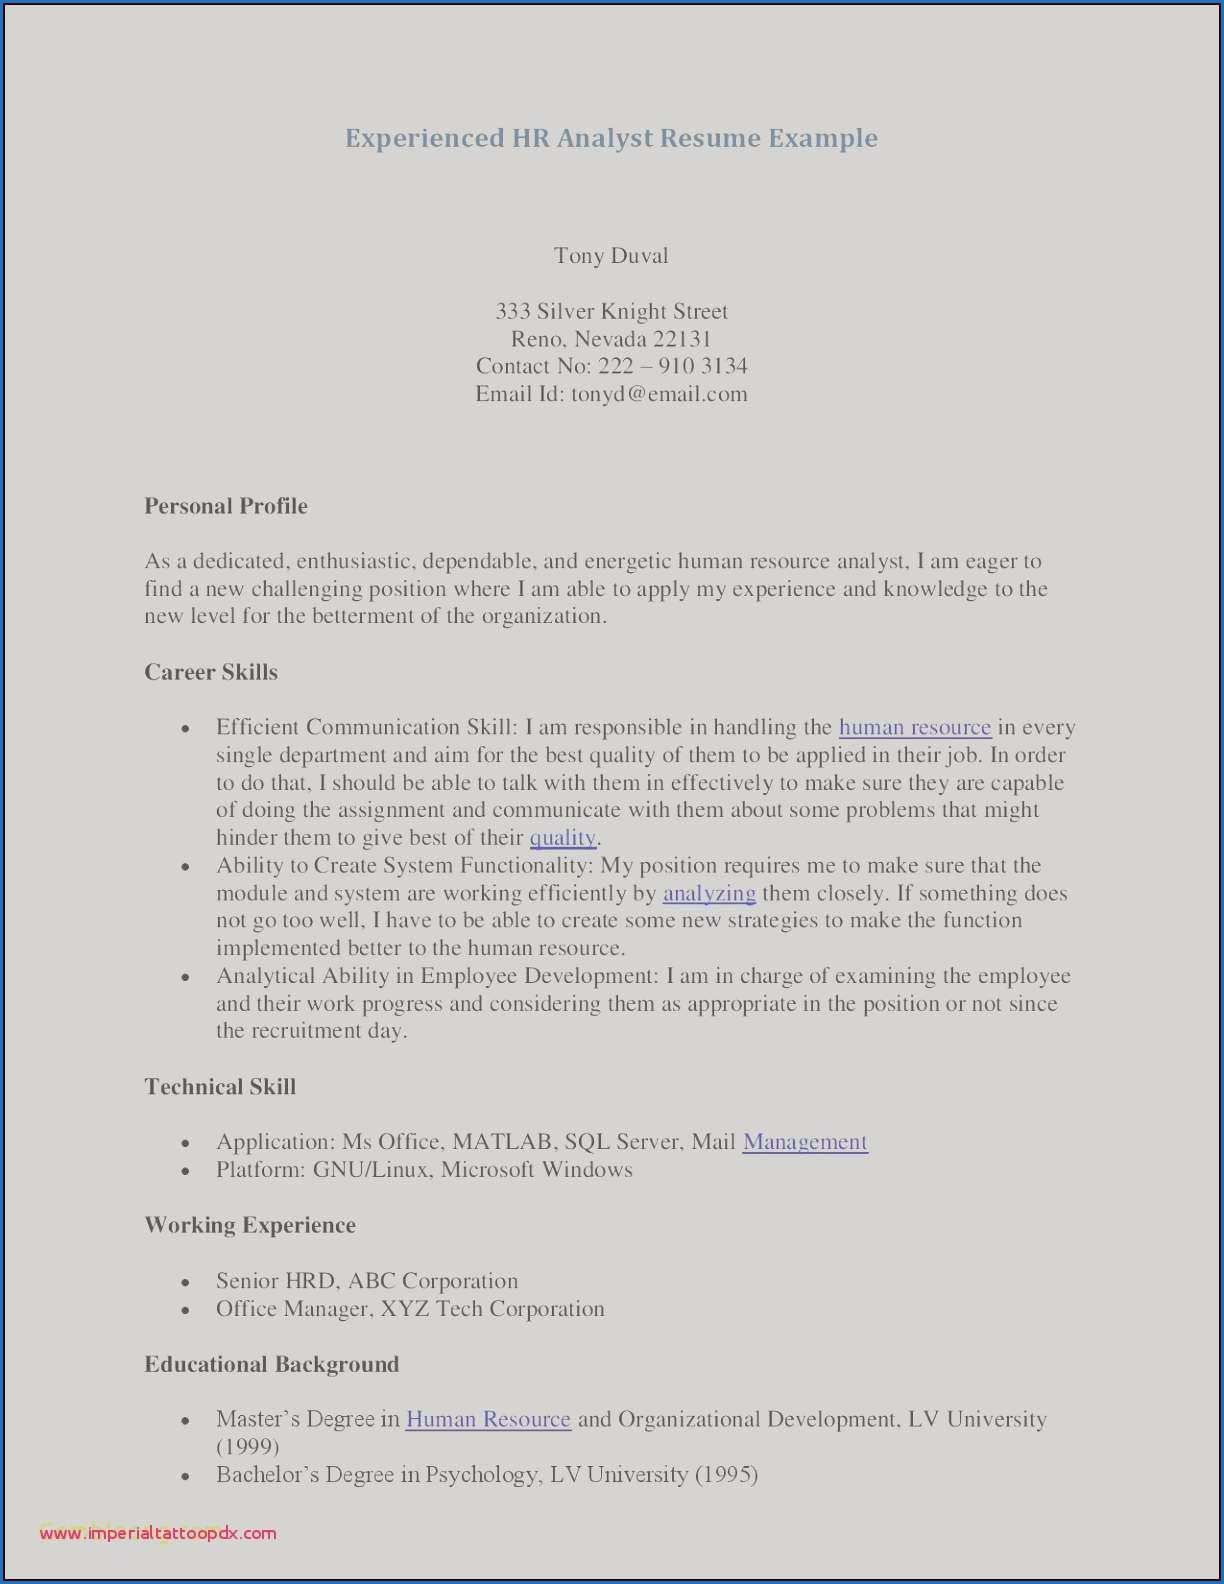 11 Traffic Management Resume Examples Check More At Https Www Ortelle Org Traffic Management Resume Examples